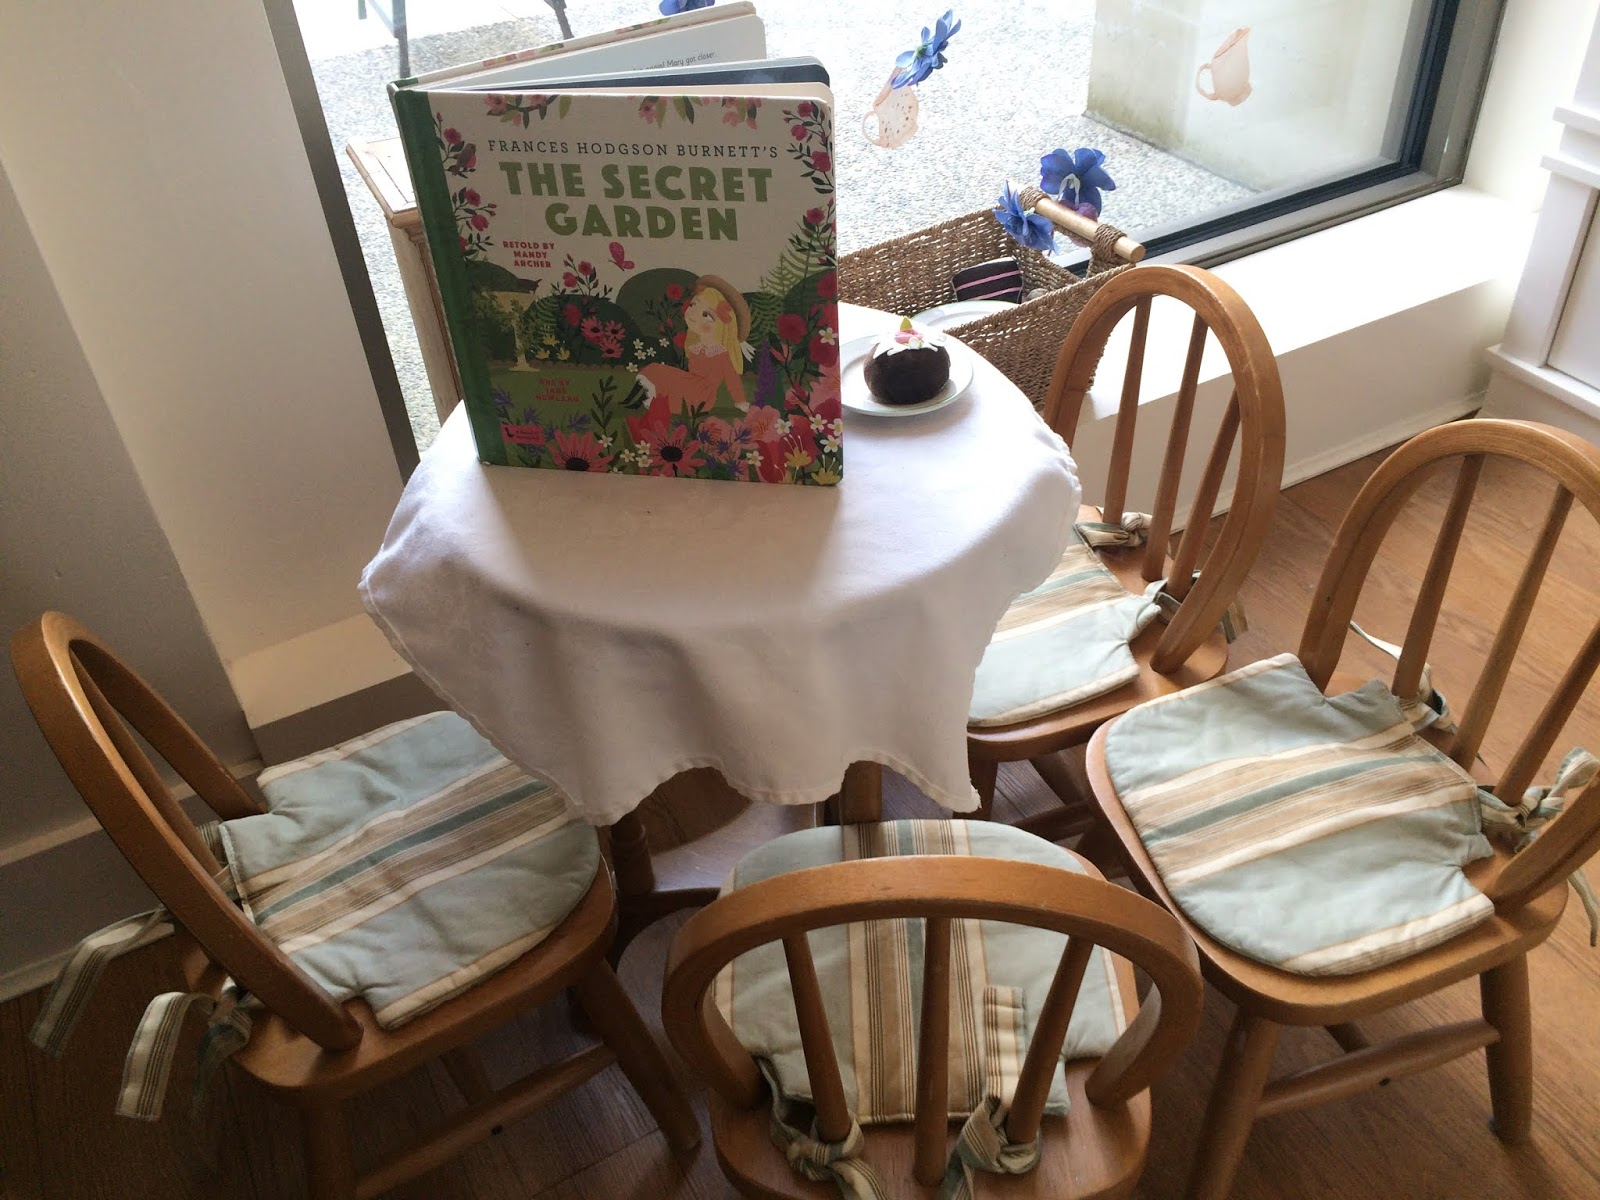 Janice S.: Lunch with Donna at The Secret Garden Tea Room in Kerrisdale